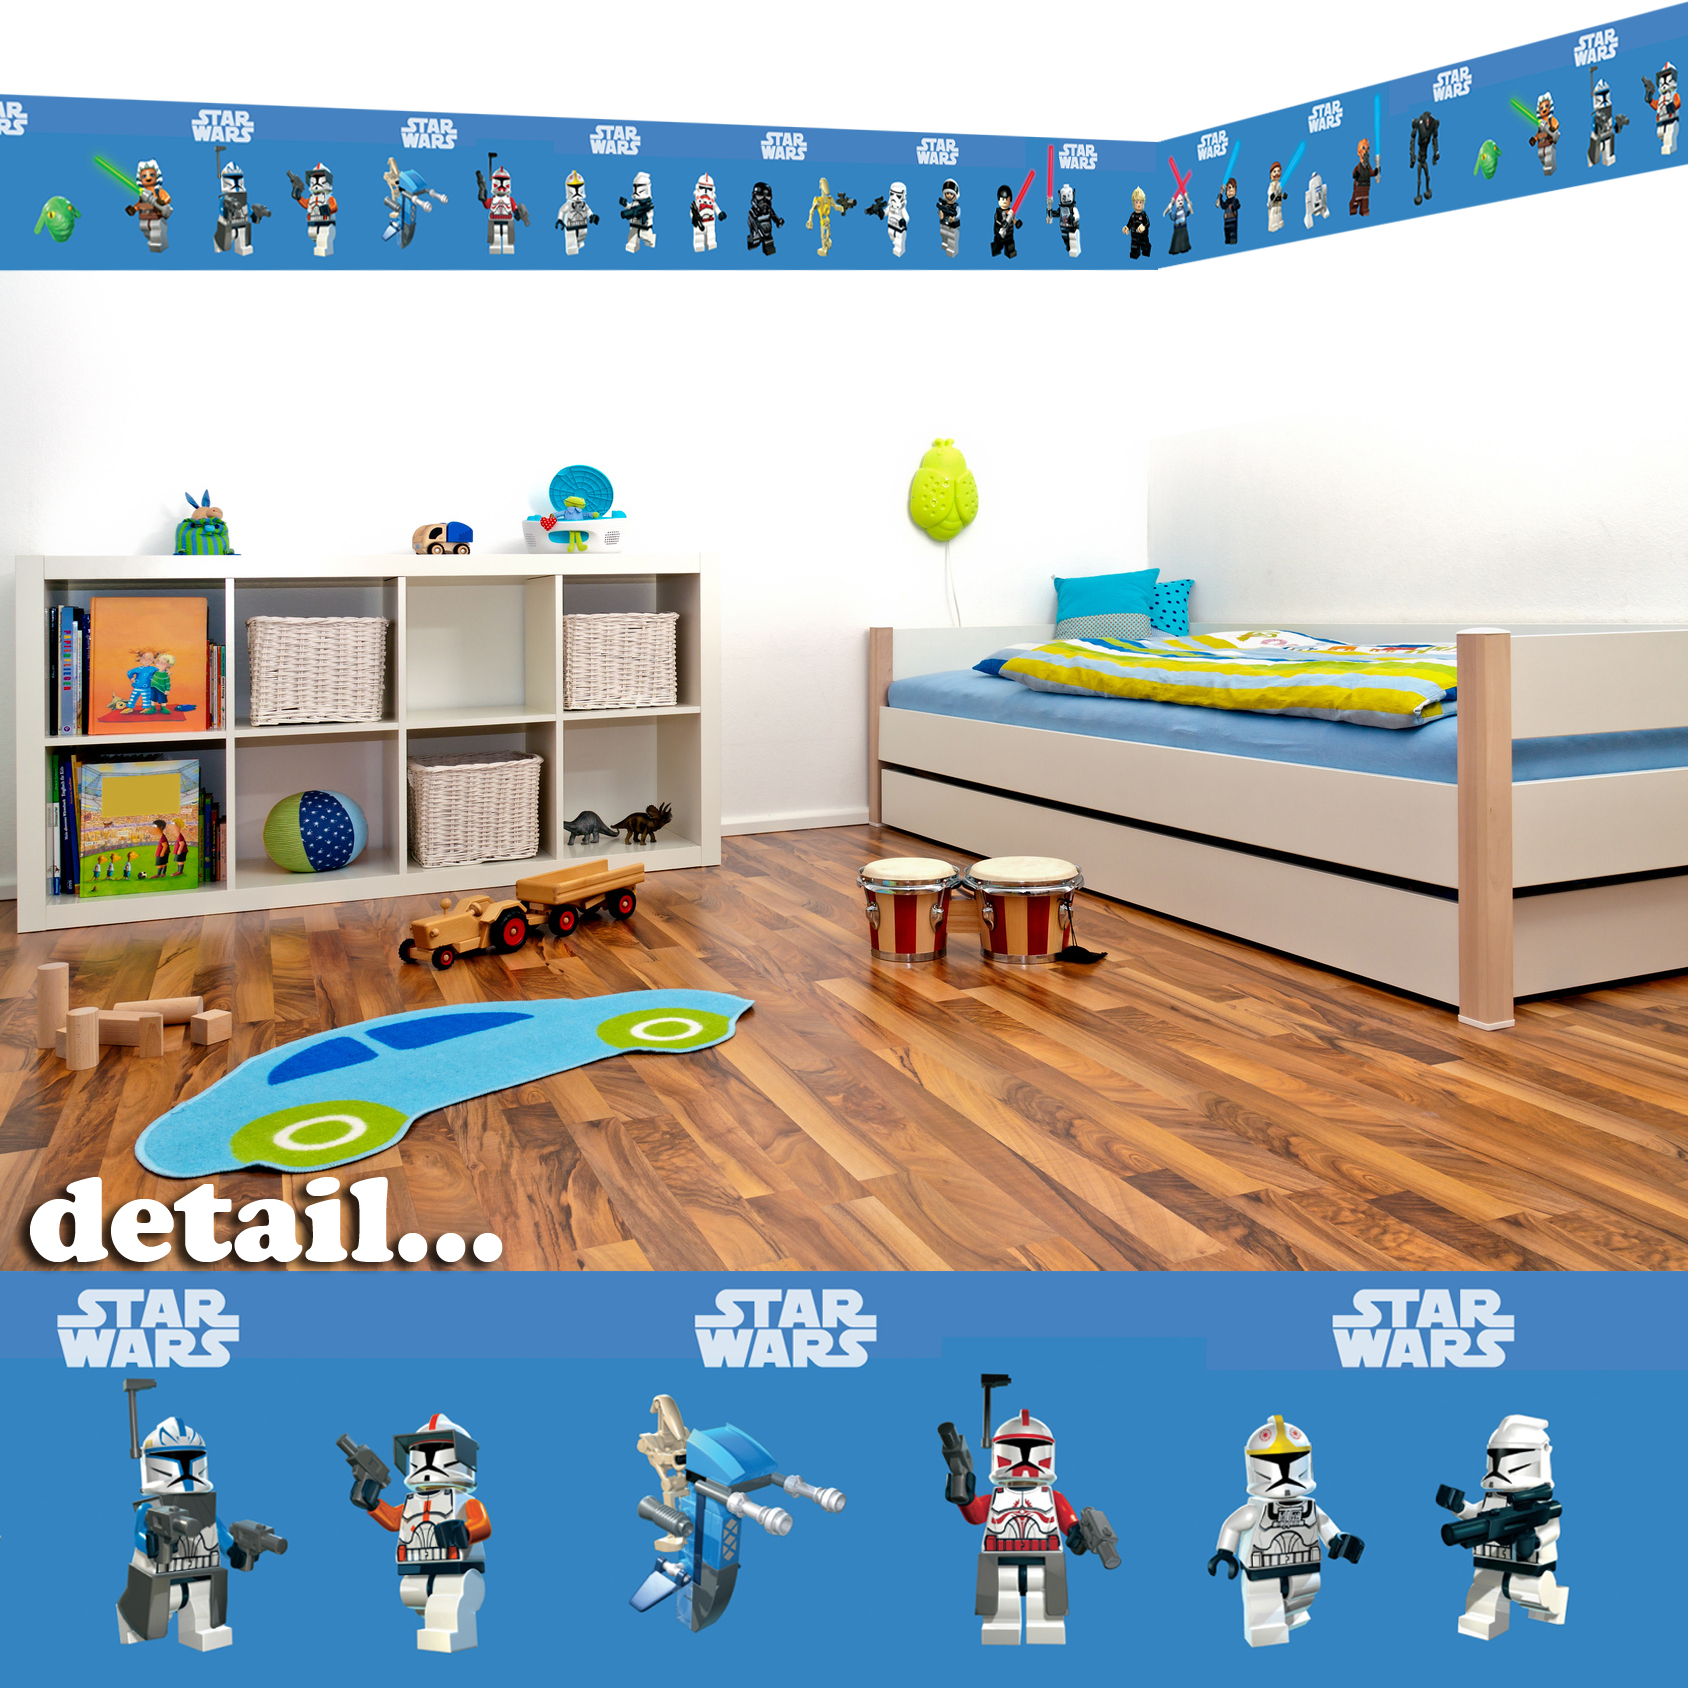 Details about Lego Star Wars Self Adhesive Decorative Wall Border   5 1688x1688